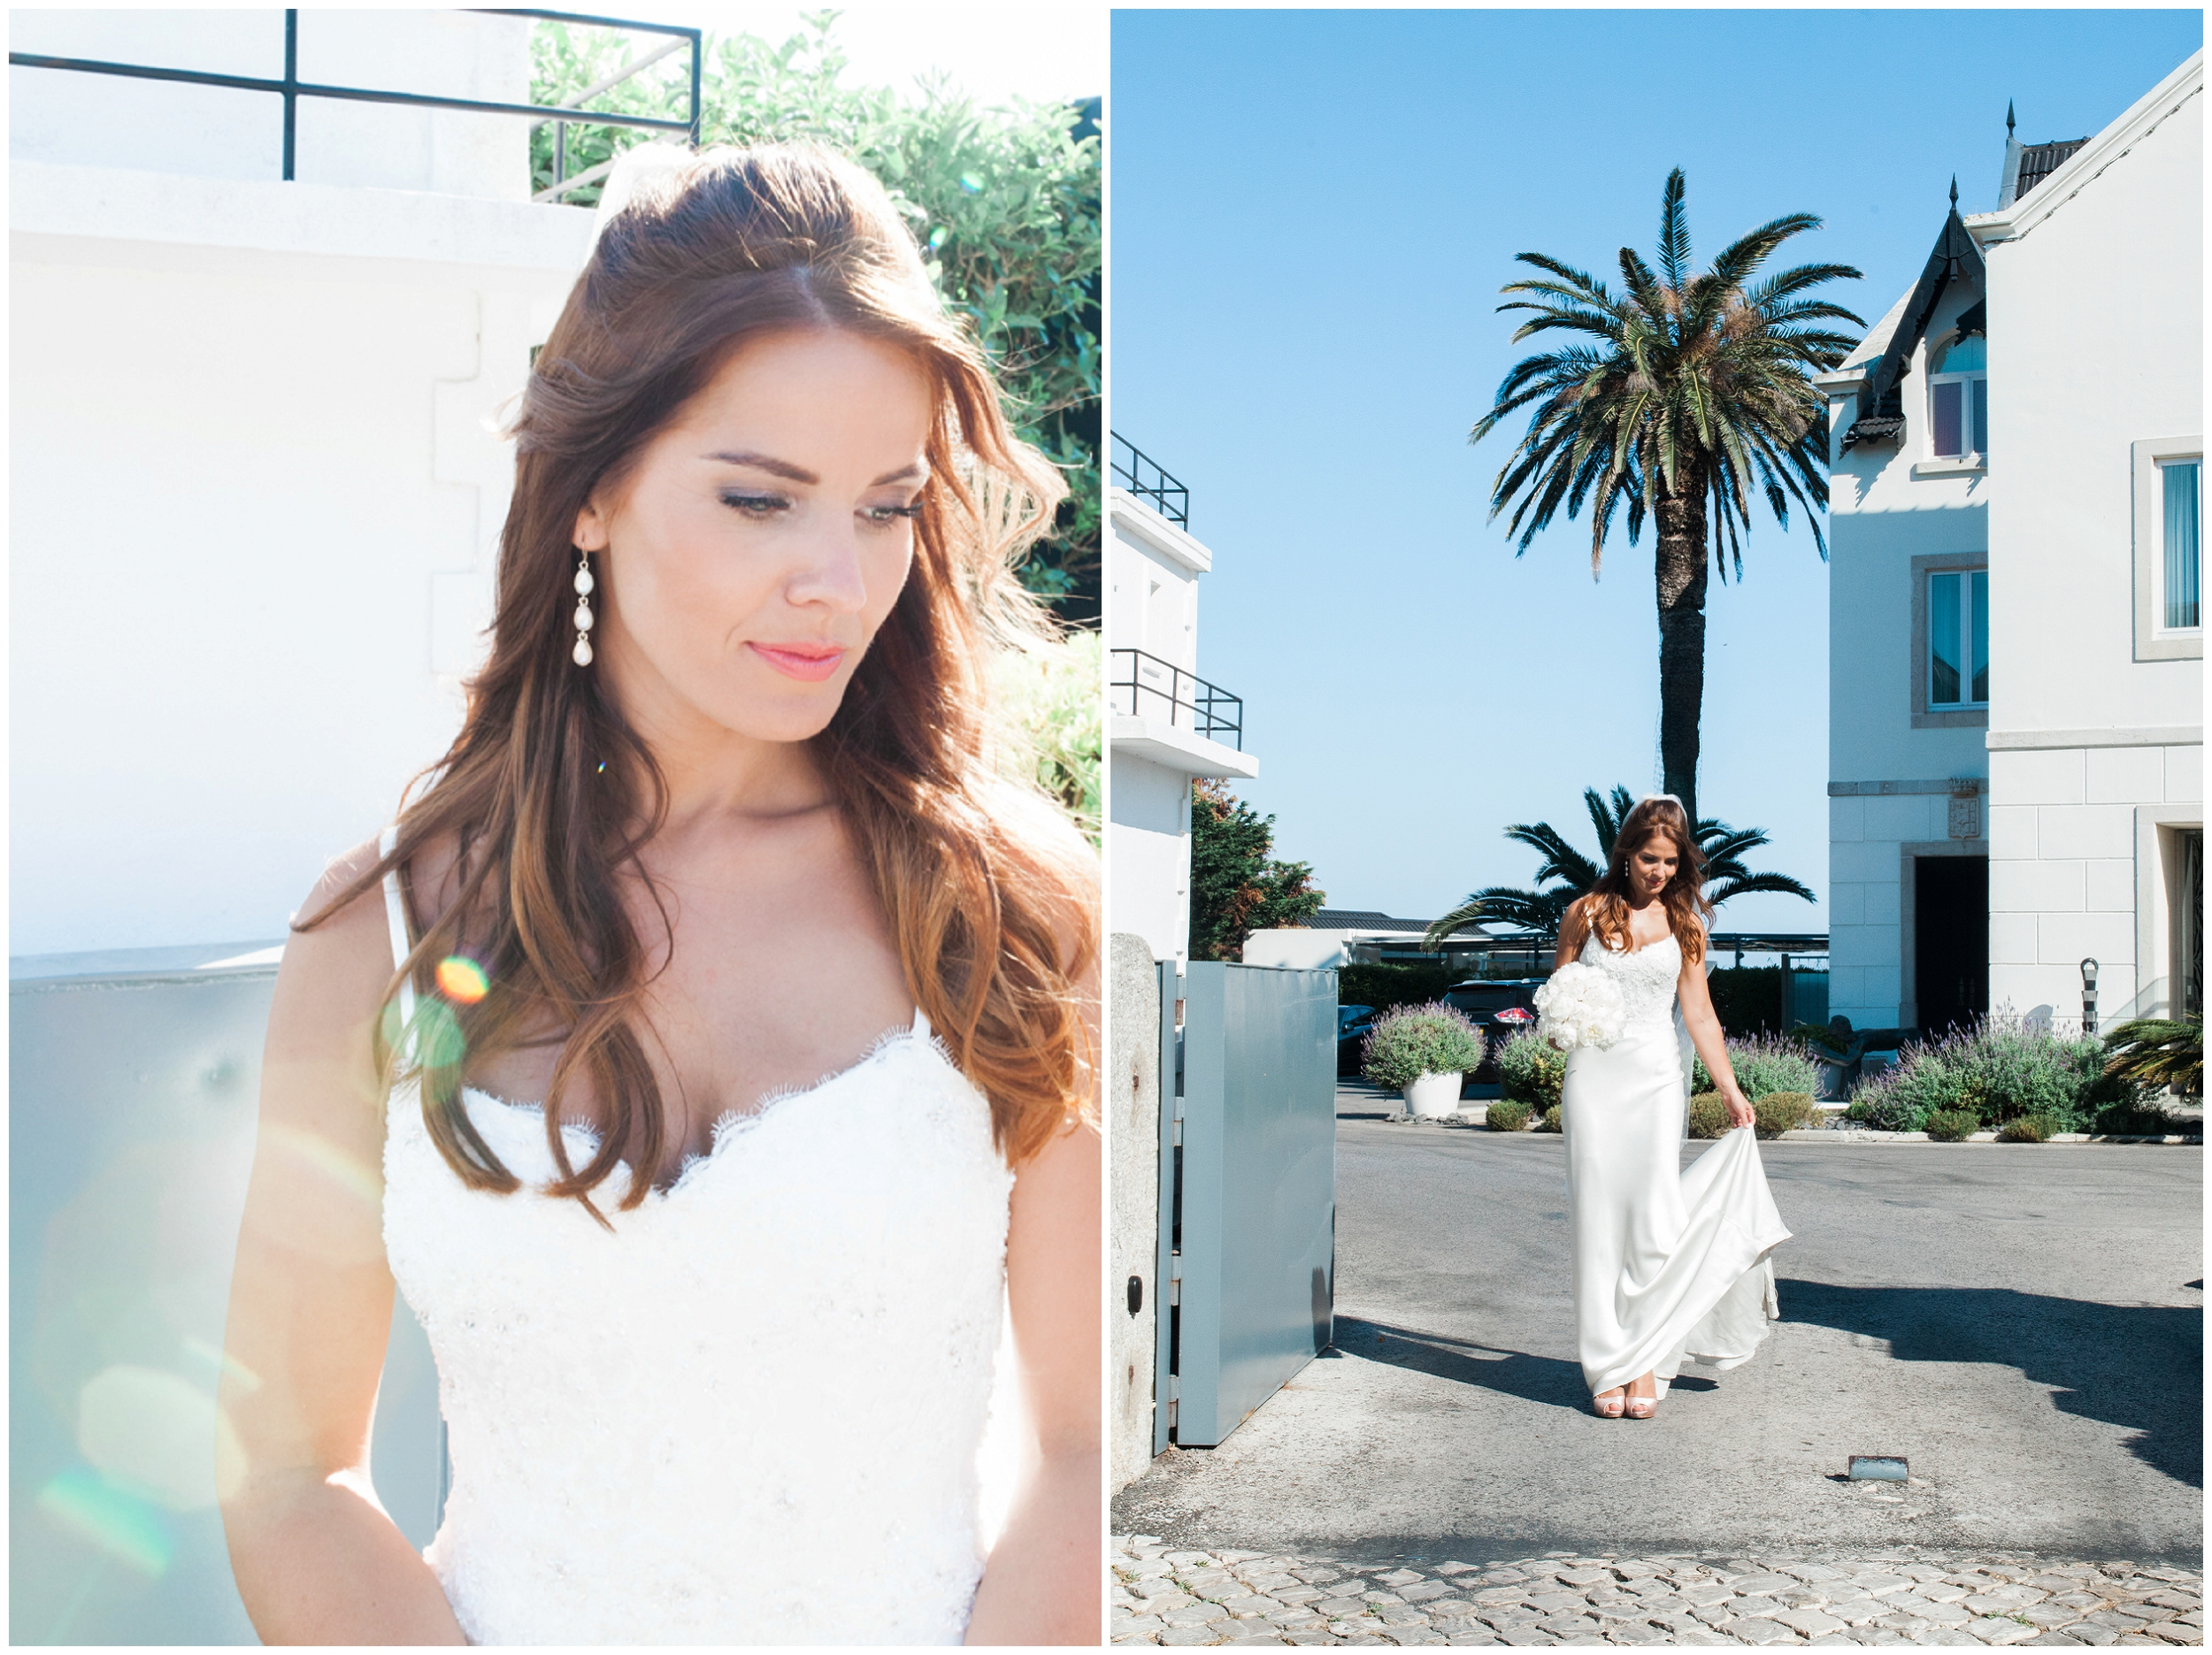 mariarao+wedding+photographer+cascais_0273.jpg